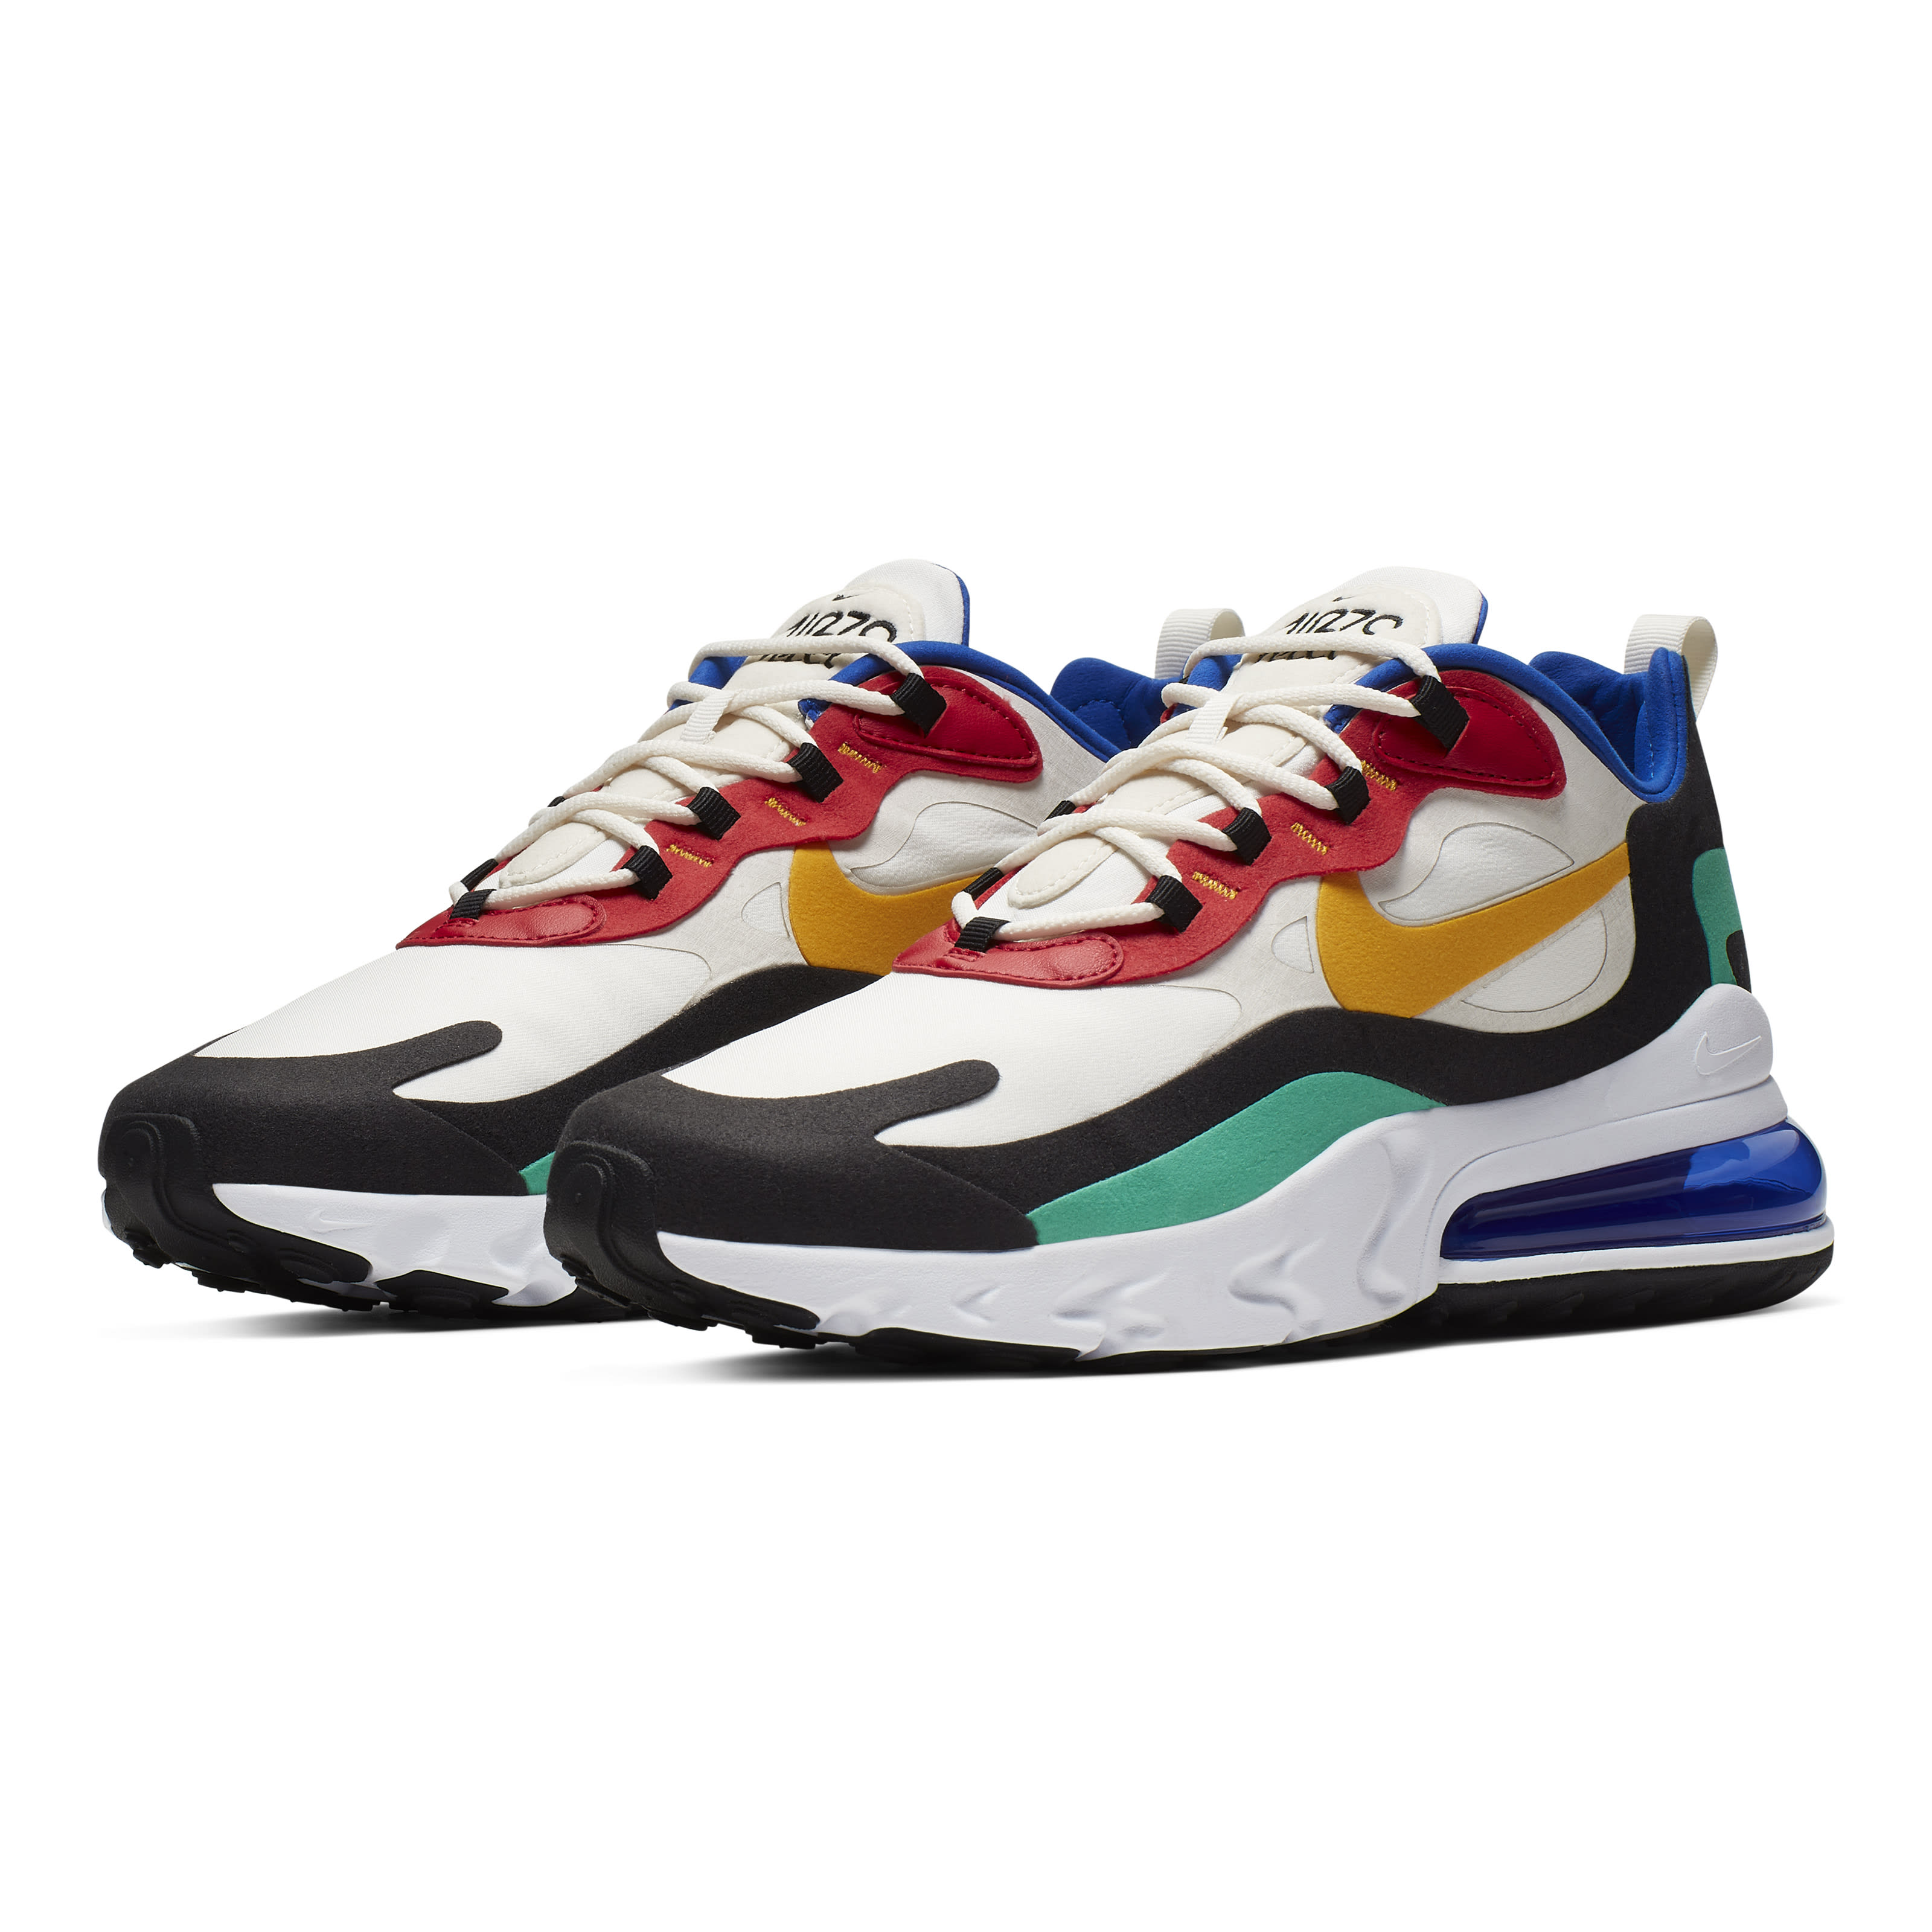 promo code 991ff 74b35 A Modern Classic Is on the Way in the Form of the Nike Air ...